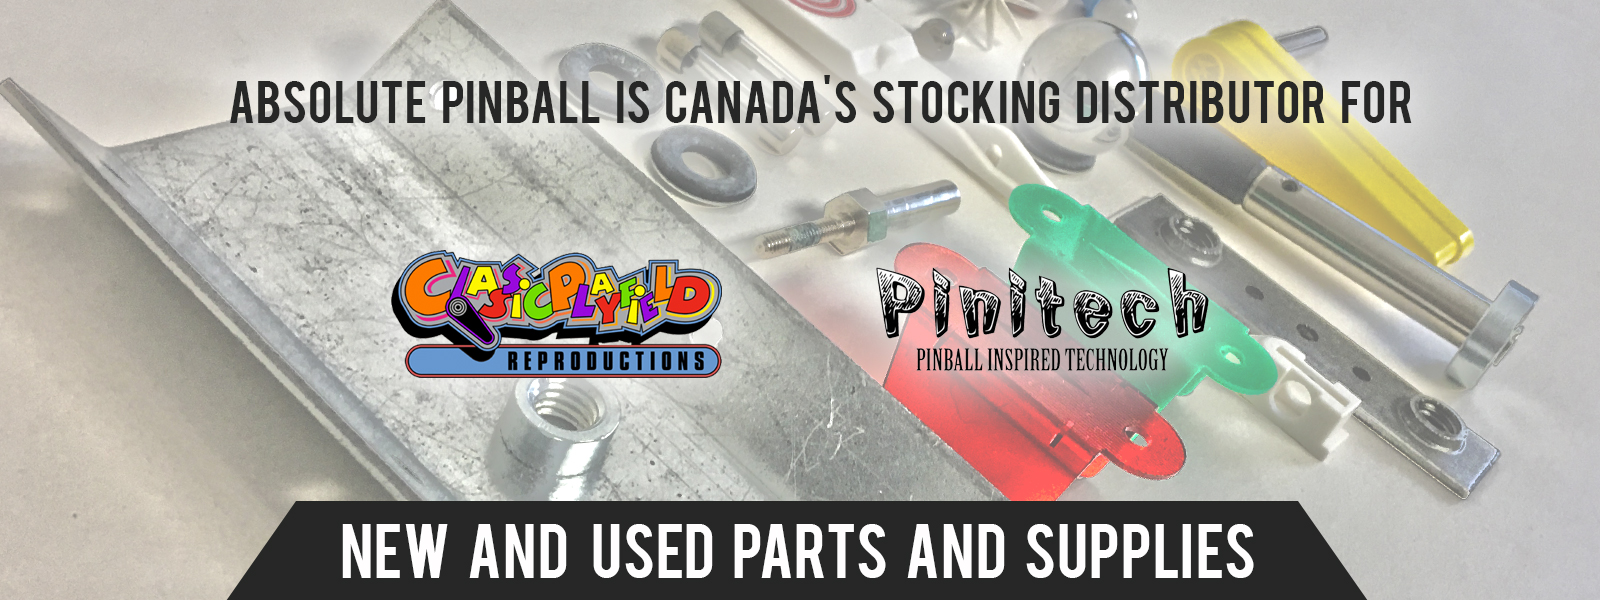 Absolute Pinball New And Used Parts